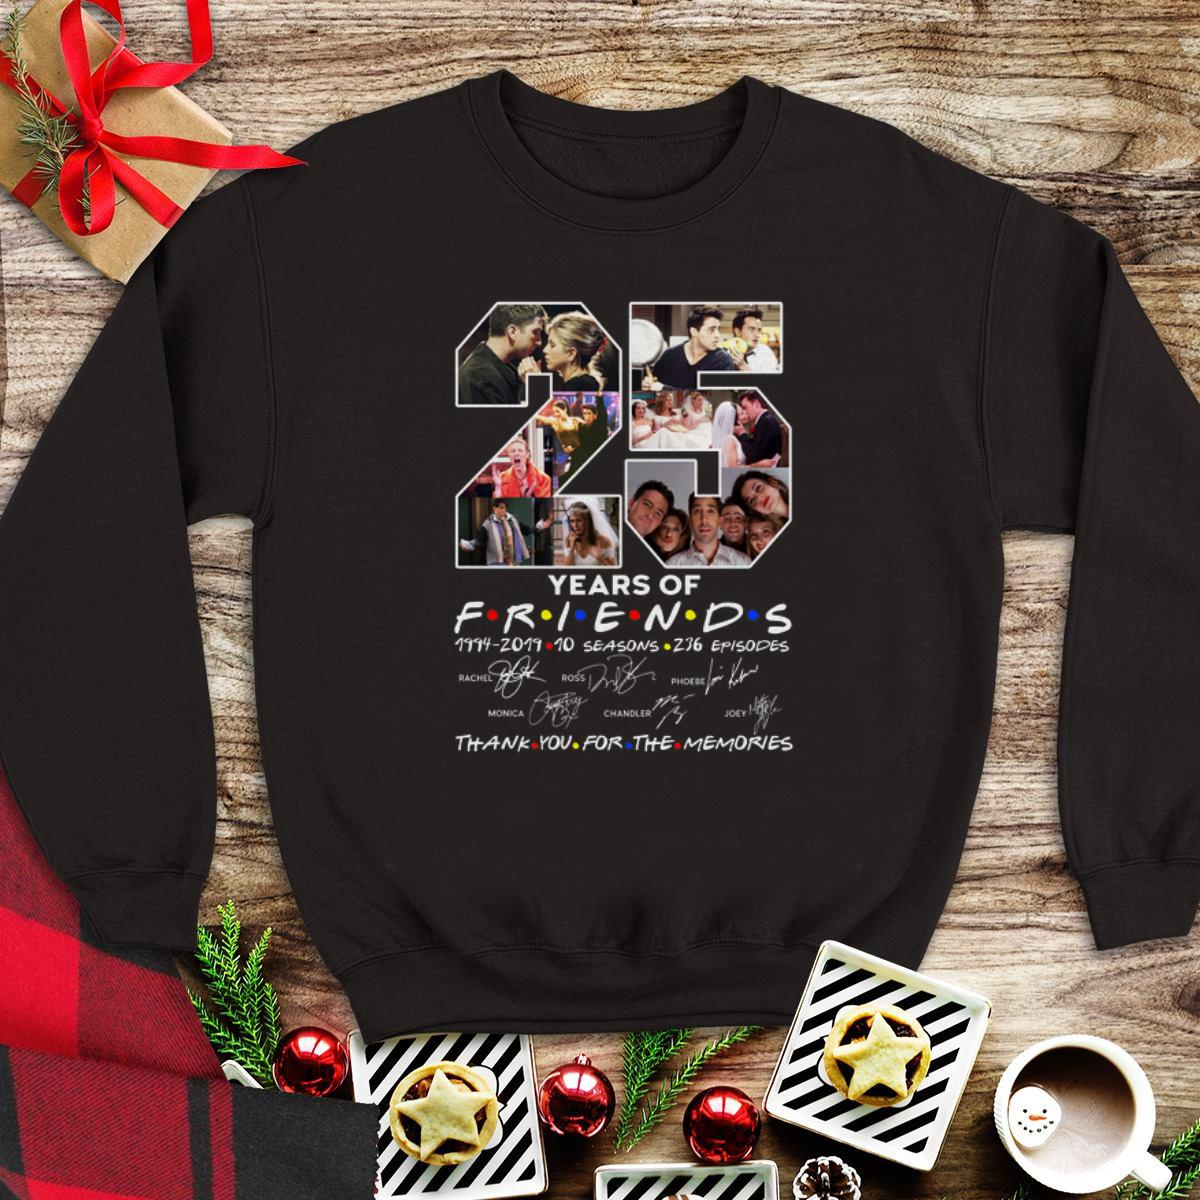 25 Years Of Friends Thank You For The Memories Signature sweater 1 - 25 Years Of Friends Thank You For The Memories Signature sweater